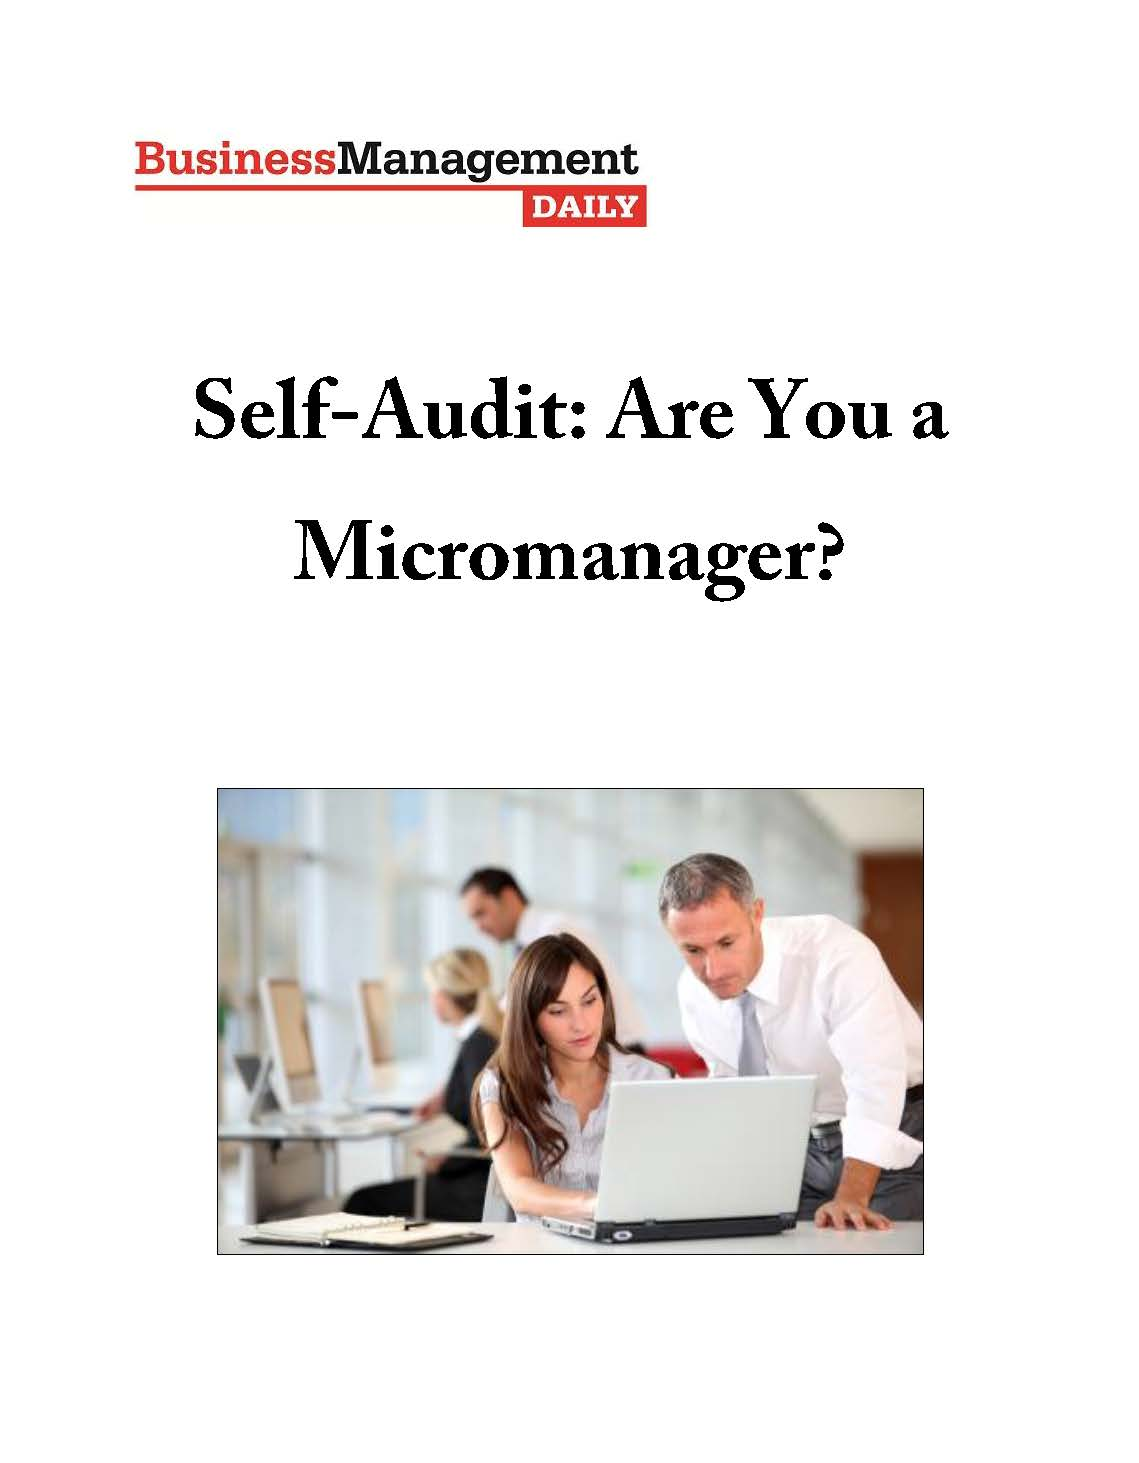 Self-Audit: Are You a Micromanager?